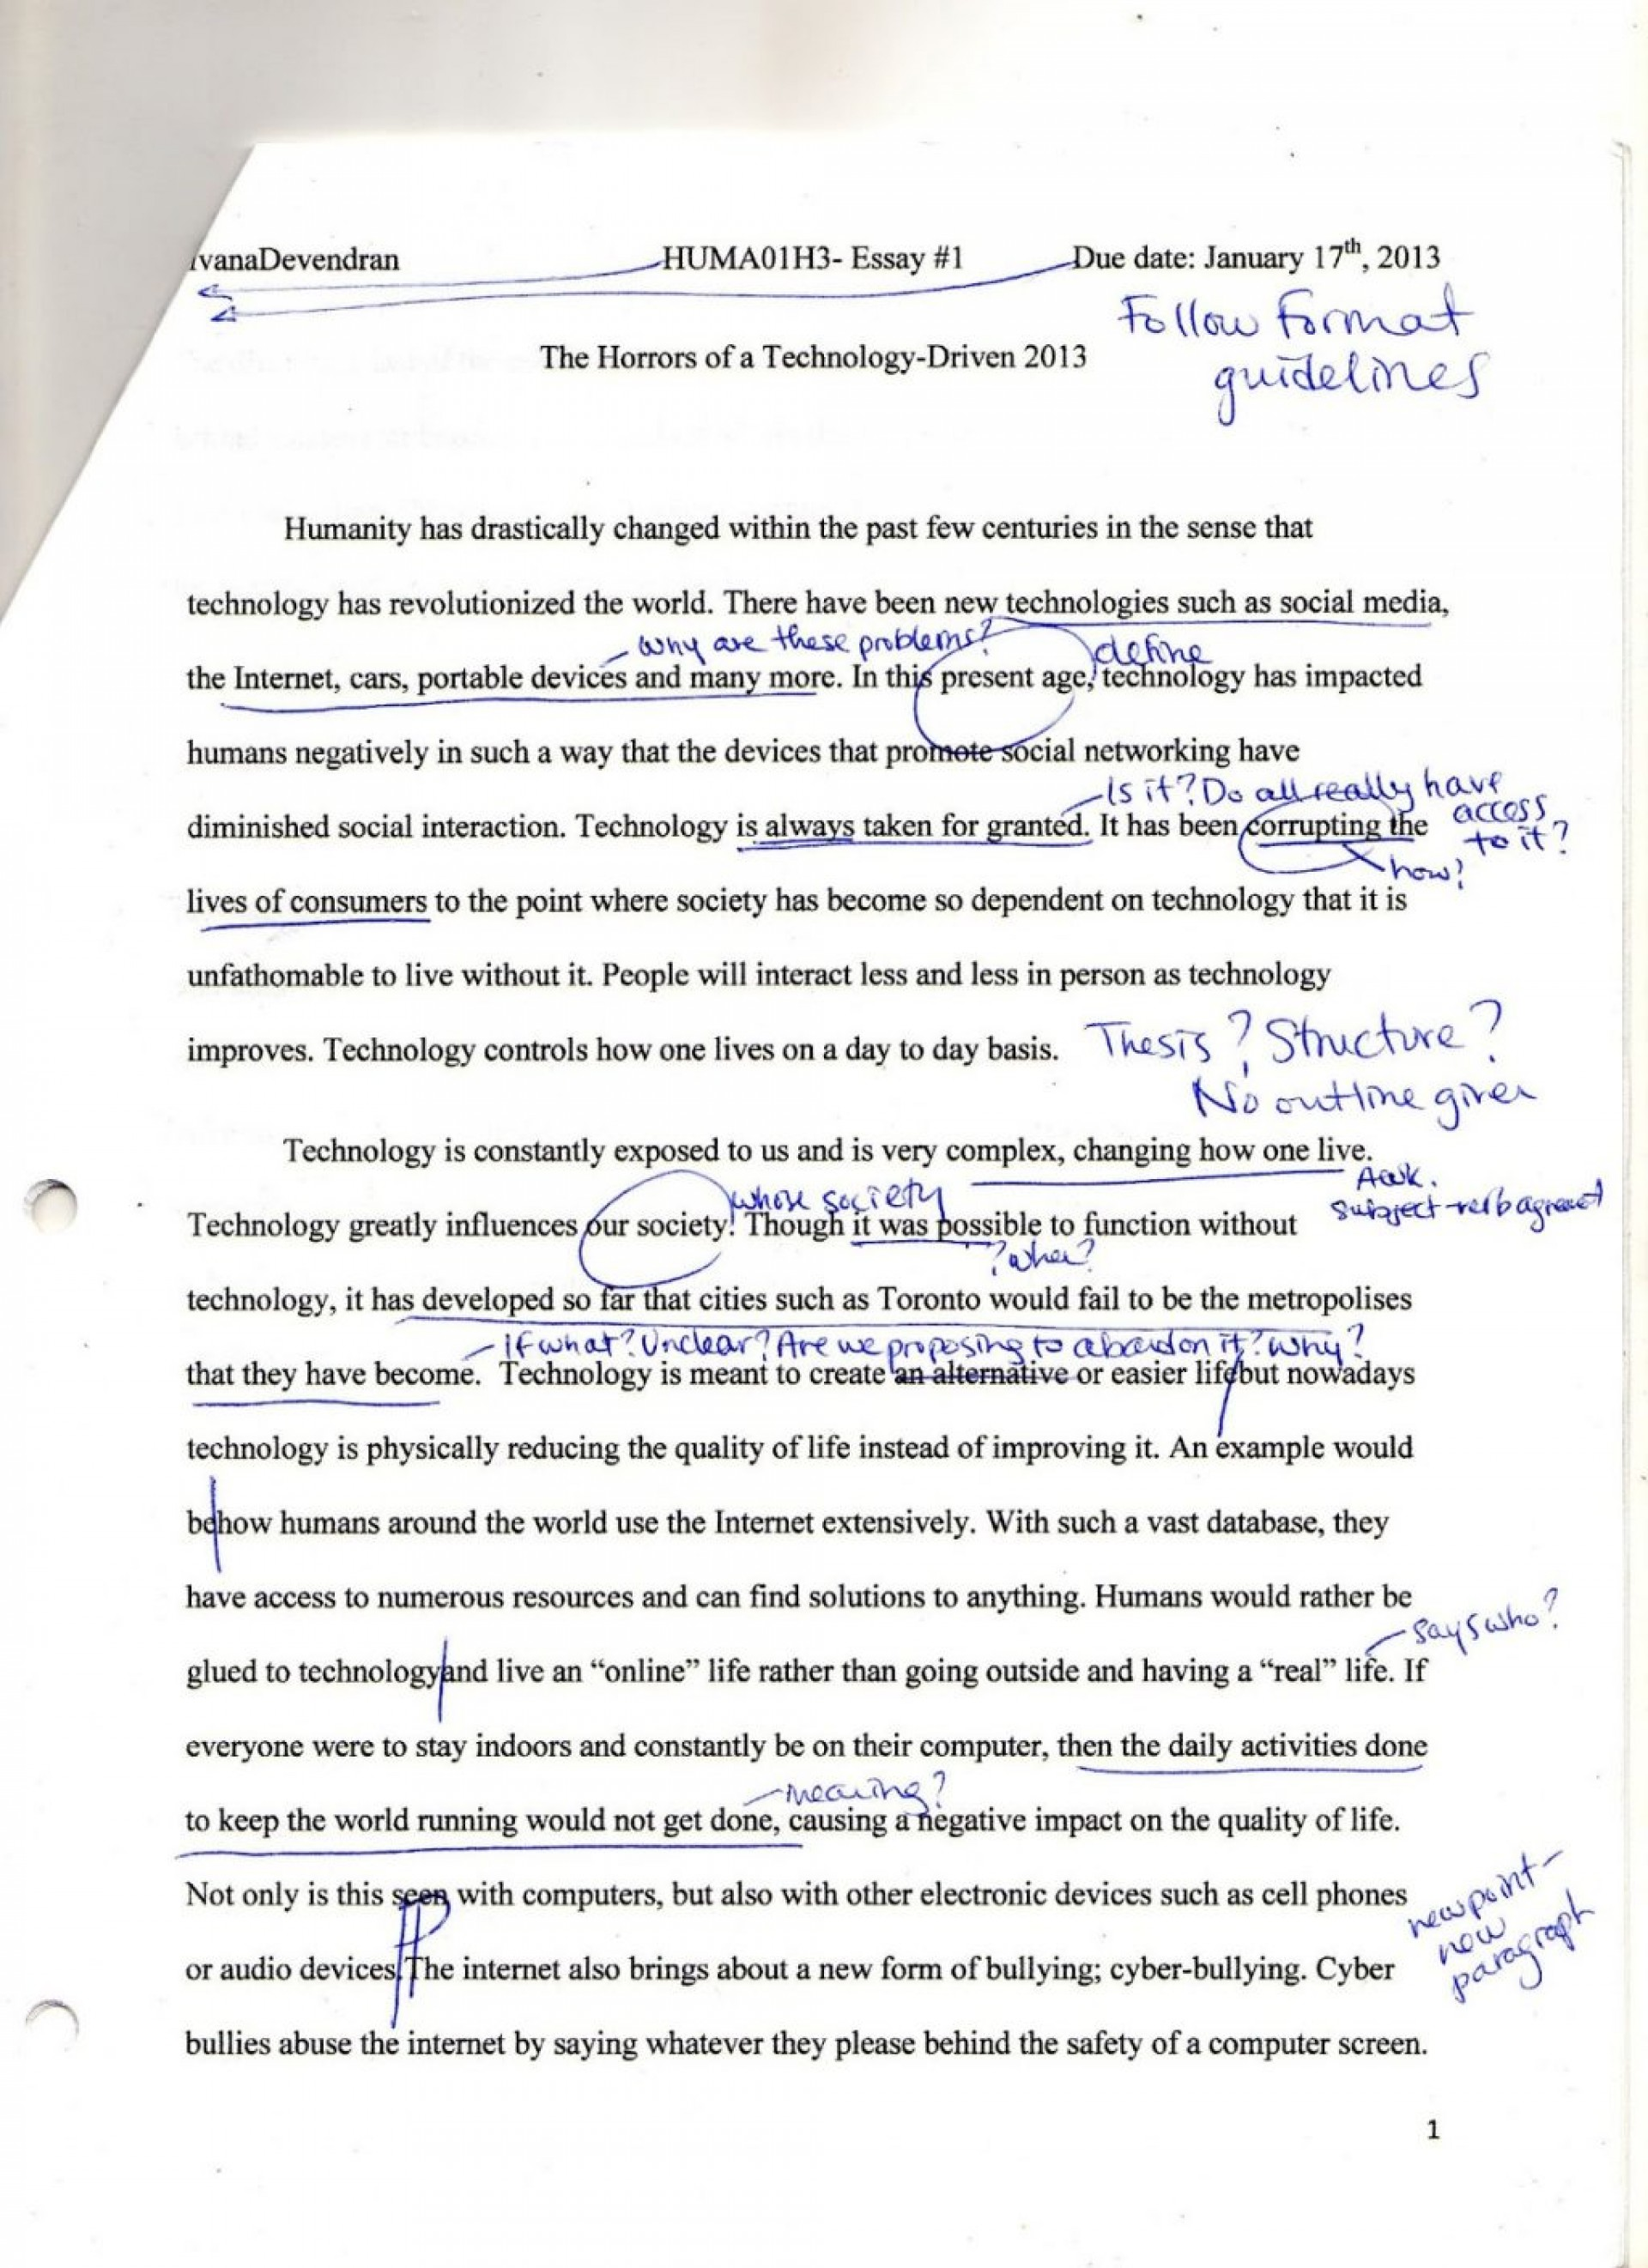 005 Music Research Paper Topics Argumentative Essay Img008 What Should You Avoid In Writing Humanities Appreciation Questions Classical History Persuasive20 Incredible 1920